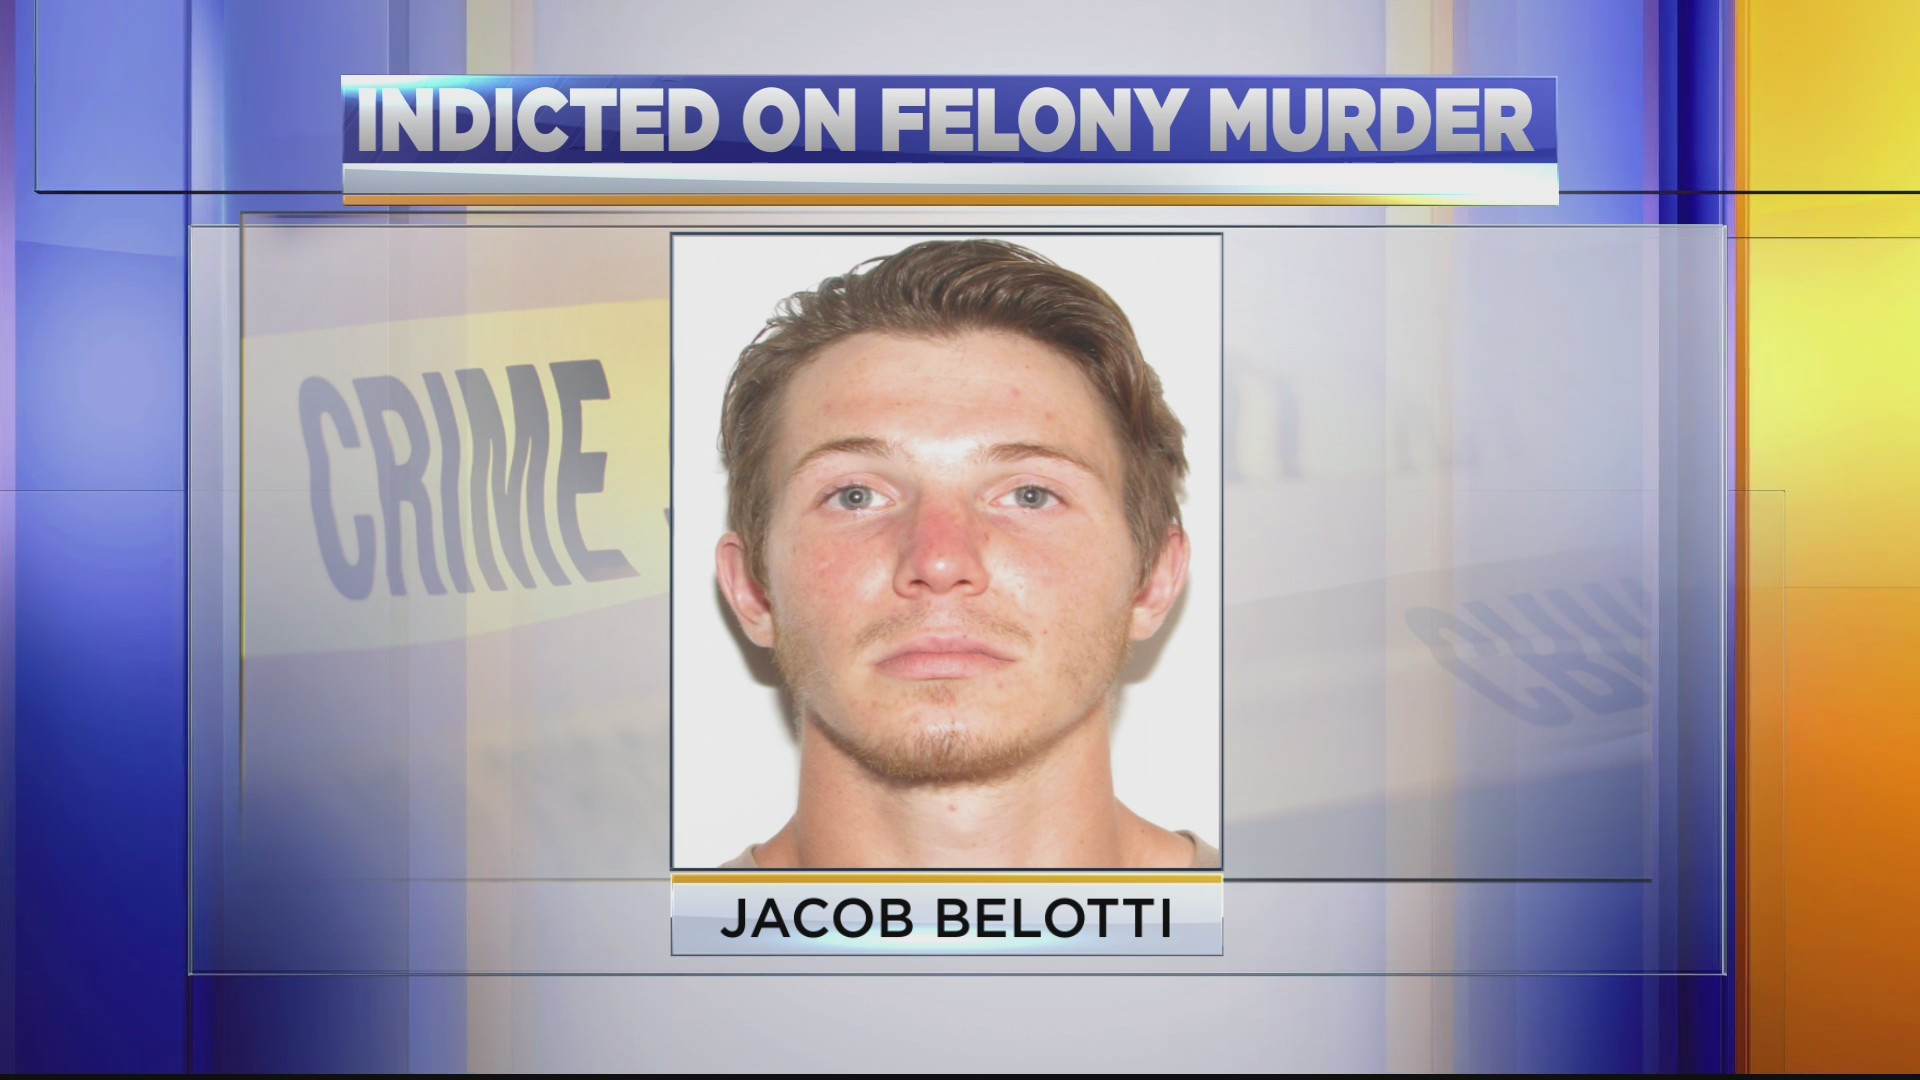 2nd_man_indicted_for_fatal_overdose_0_20190517231003